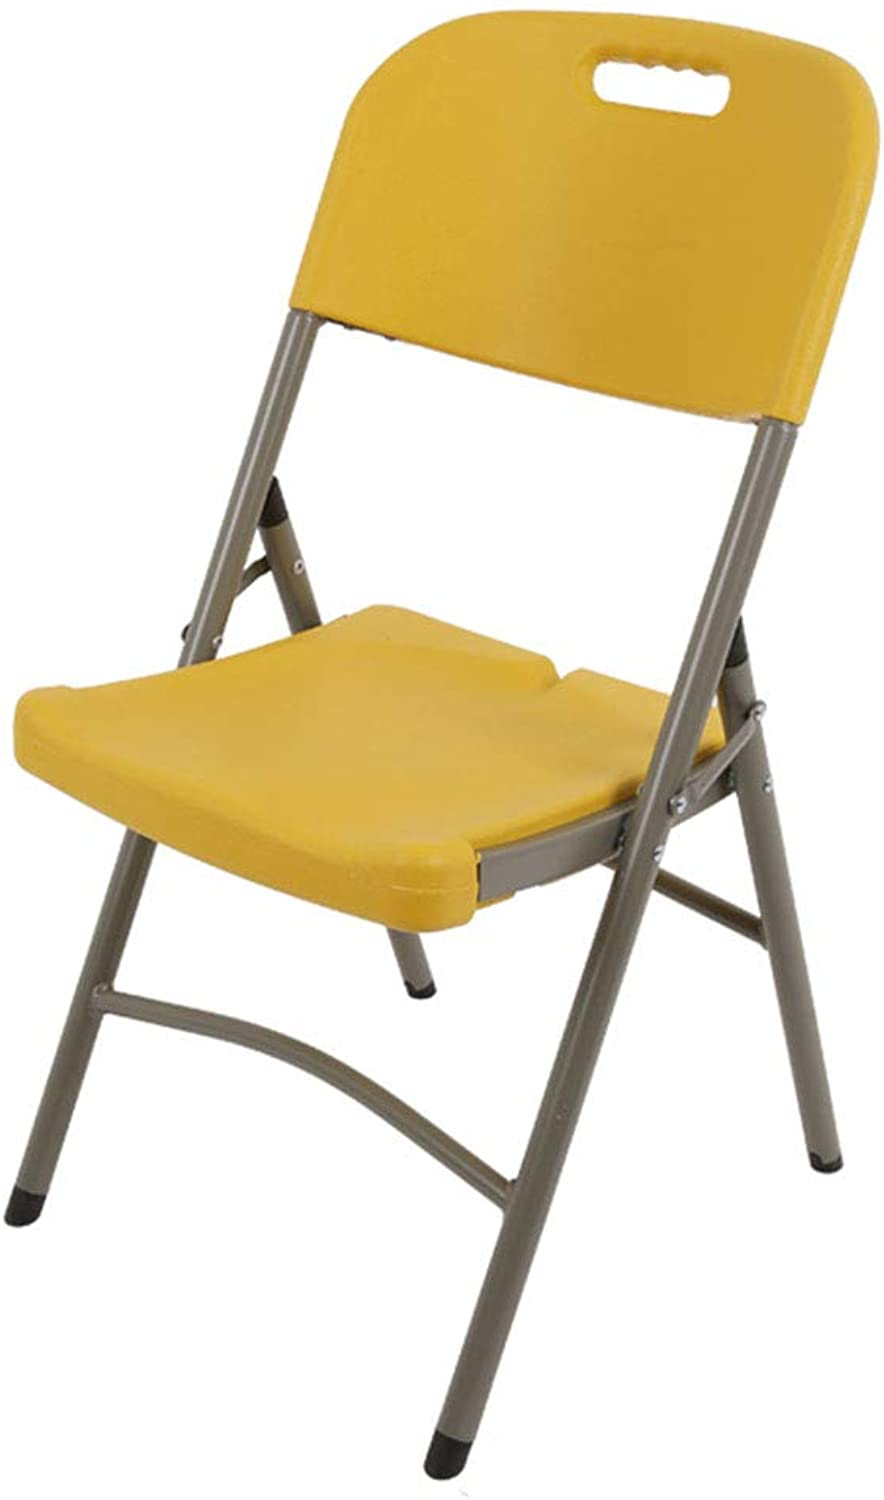 Folding Chair Home Leisure Training Portable Conference Chair Stall Table and Chair(45  43  88cm) (color   Yellow)